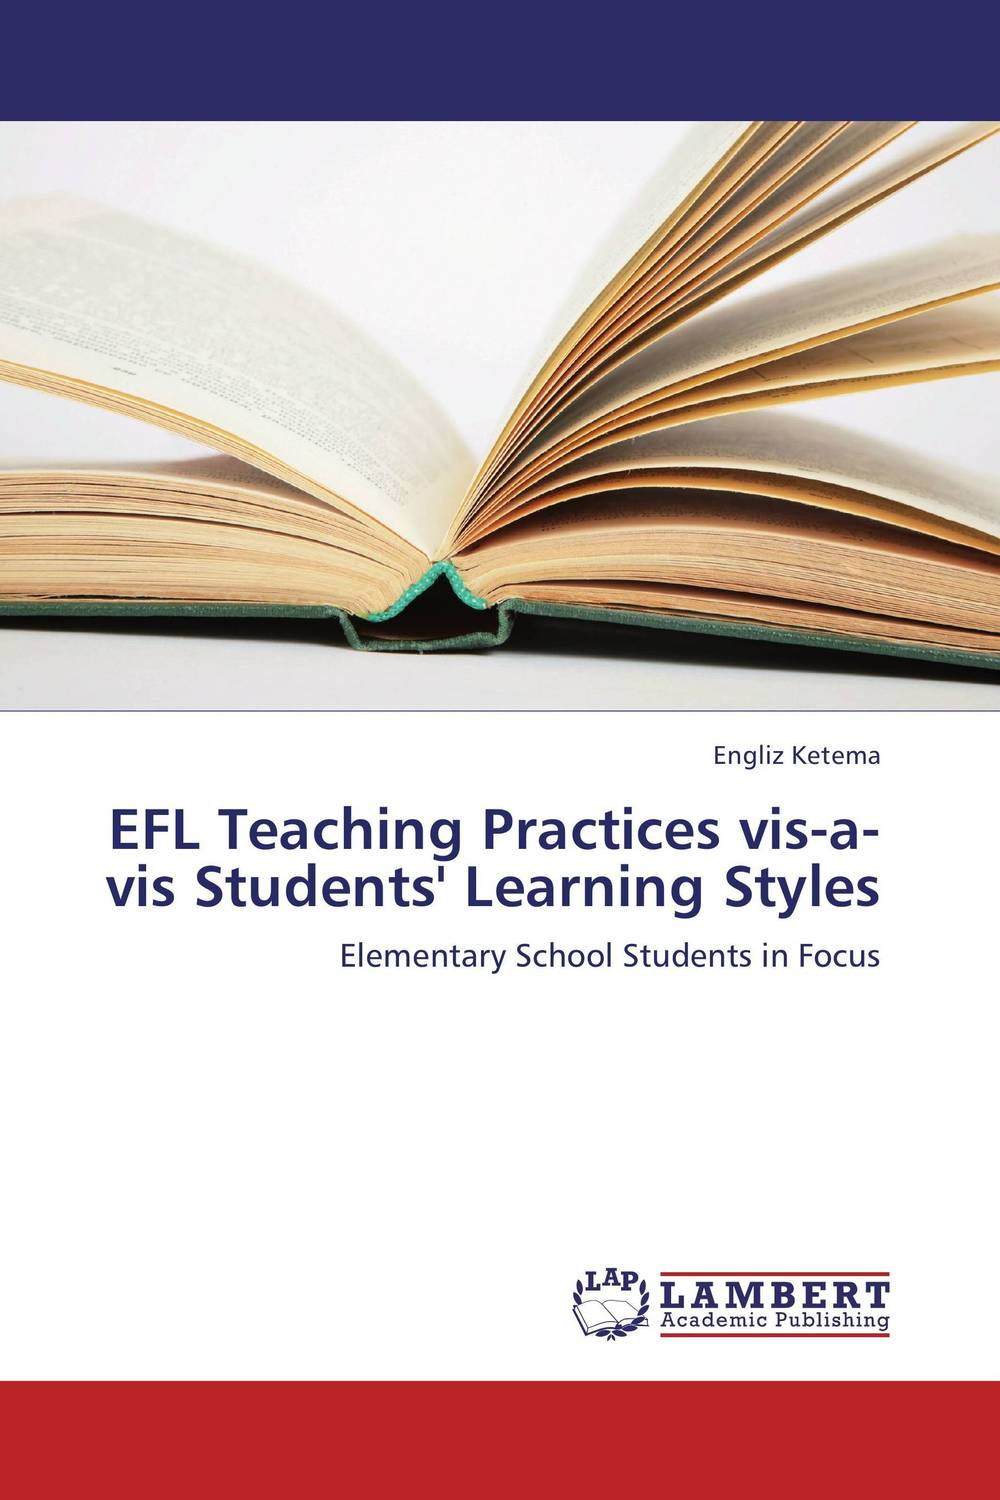 EFL Teaching Practices vis-a-vis Students' Learning Styles roshanak nouralian learning based readiness and speaking ability of efl learners